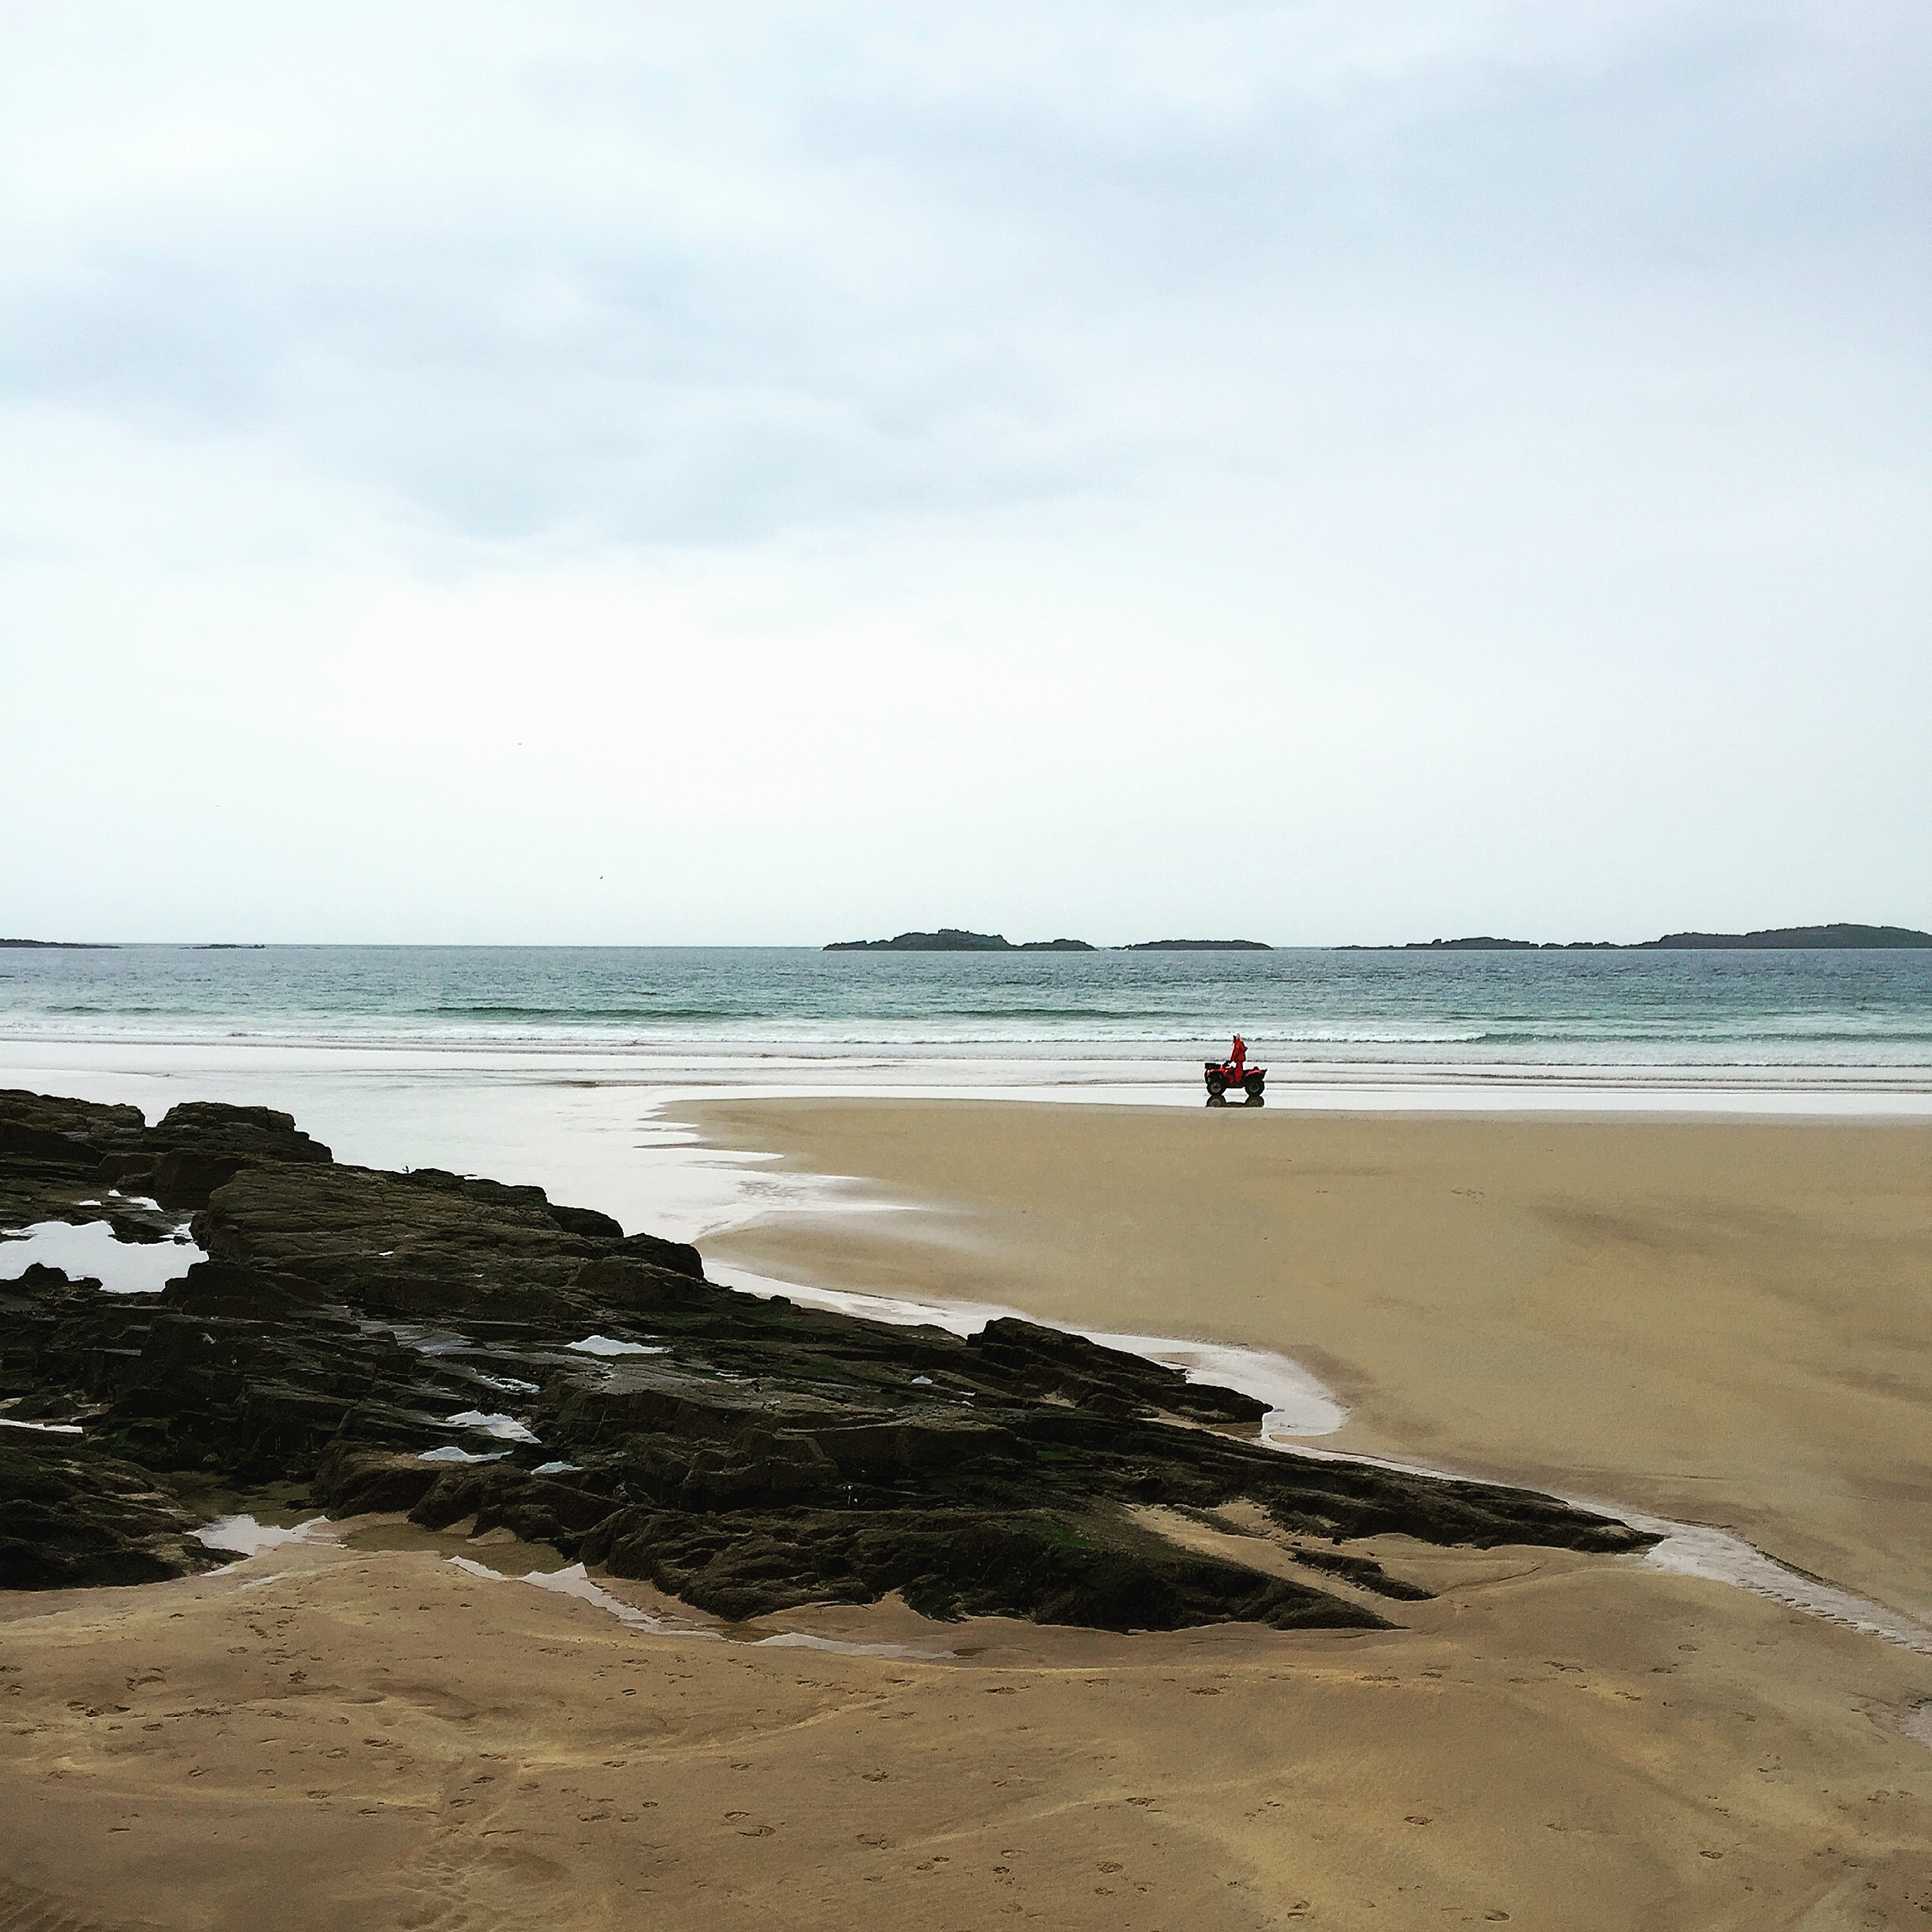 portrush_strand_portrush_north_coast_causeway_ni_explorer_niexplorer_northern_ireland_blog.jpg